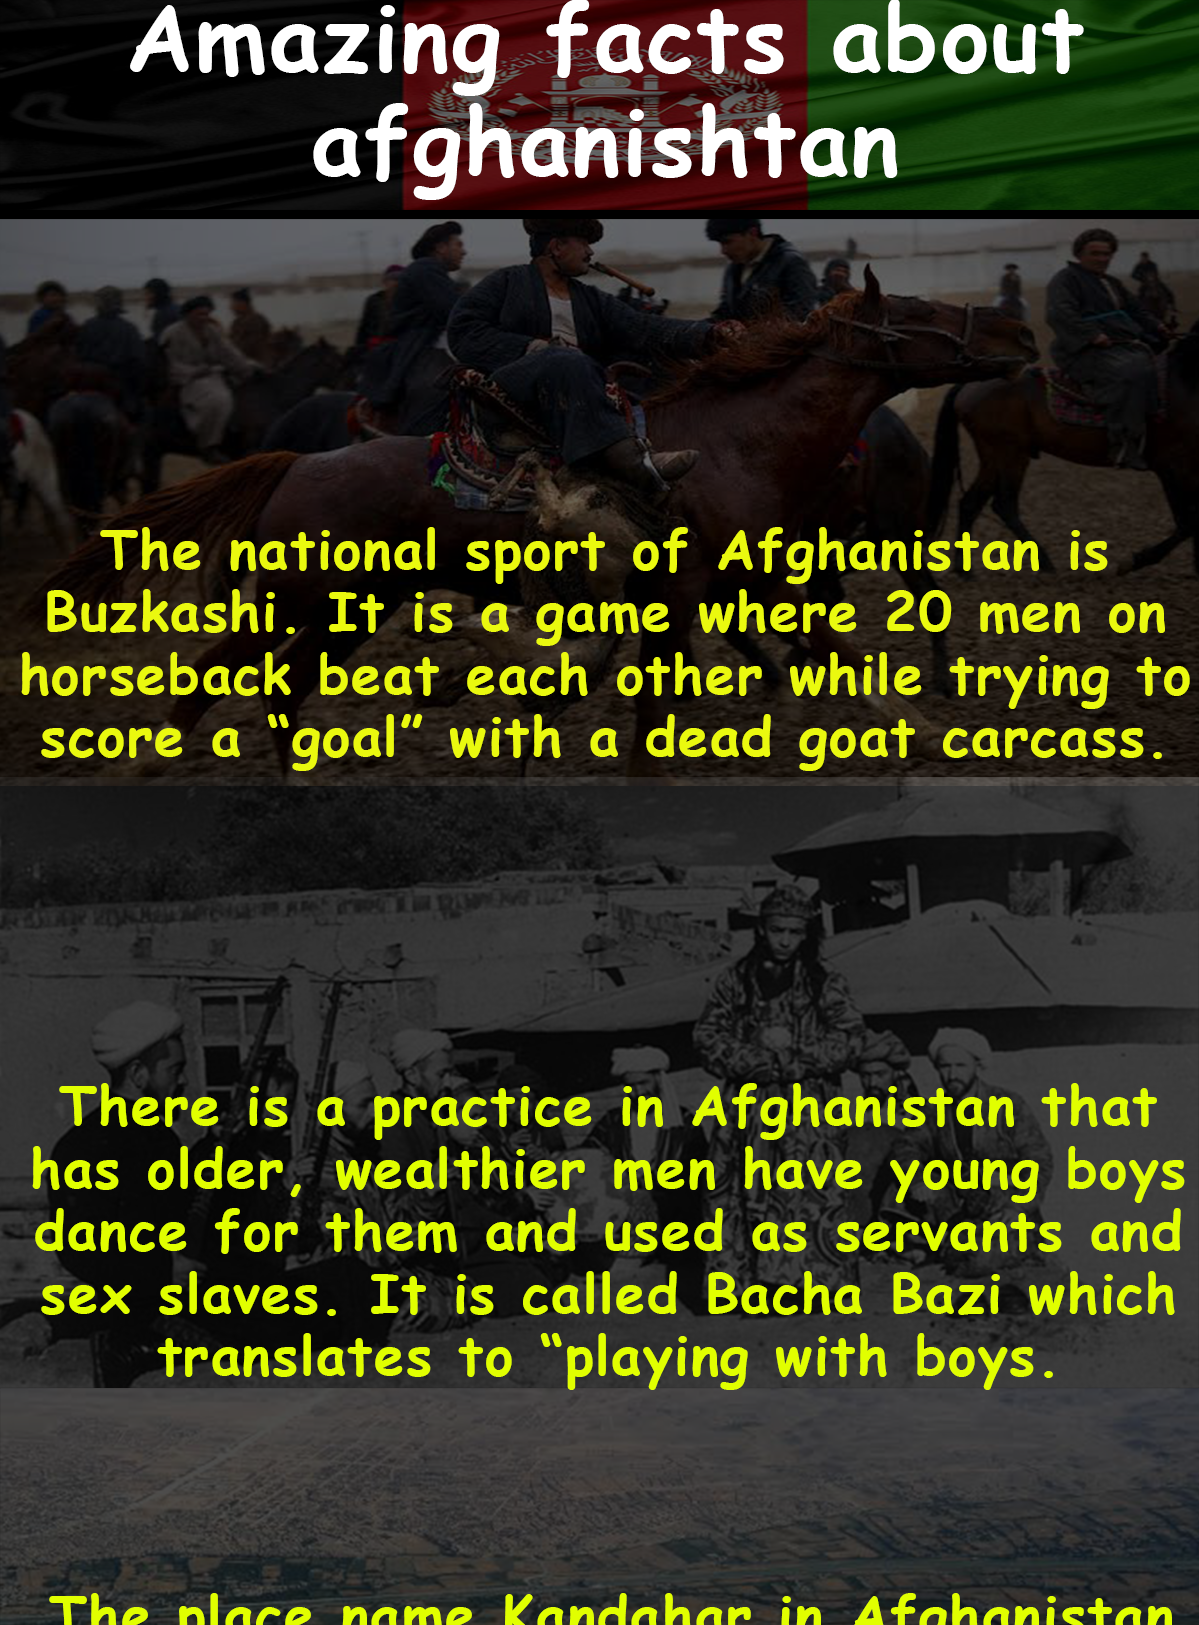 Amazing facts about Afghanistan Amazing facts about Afghanistan